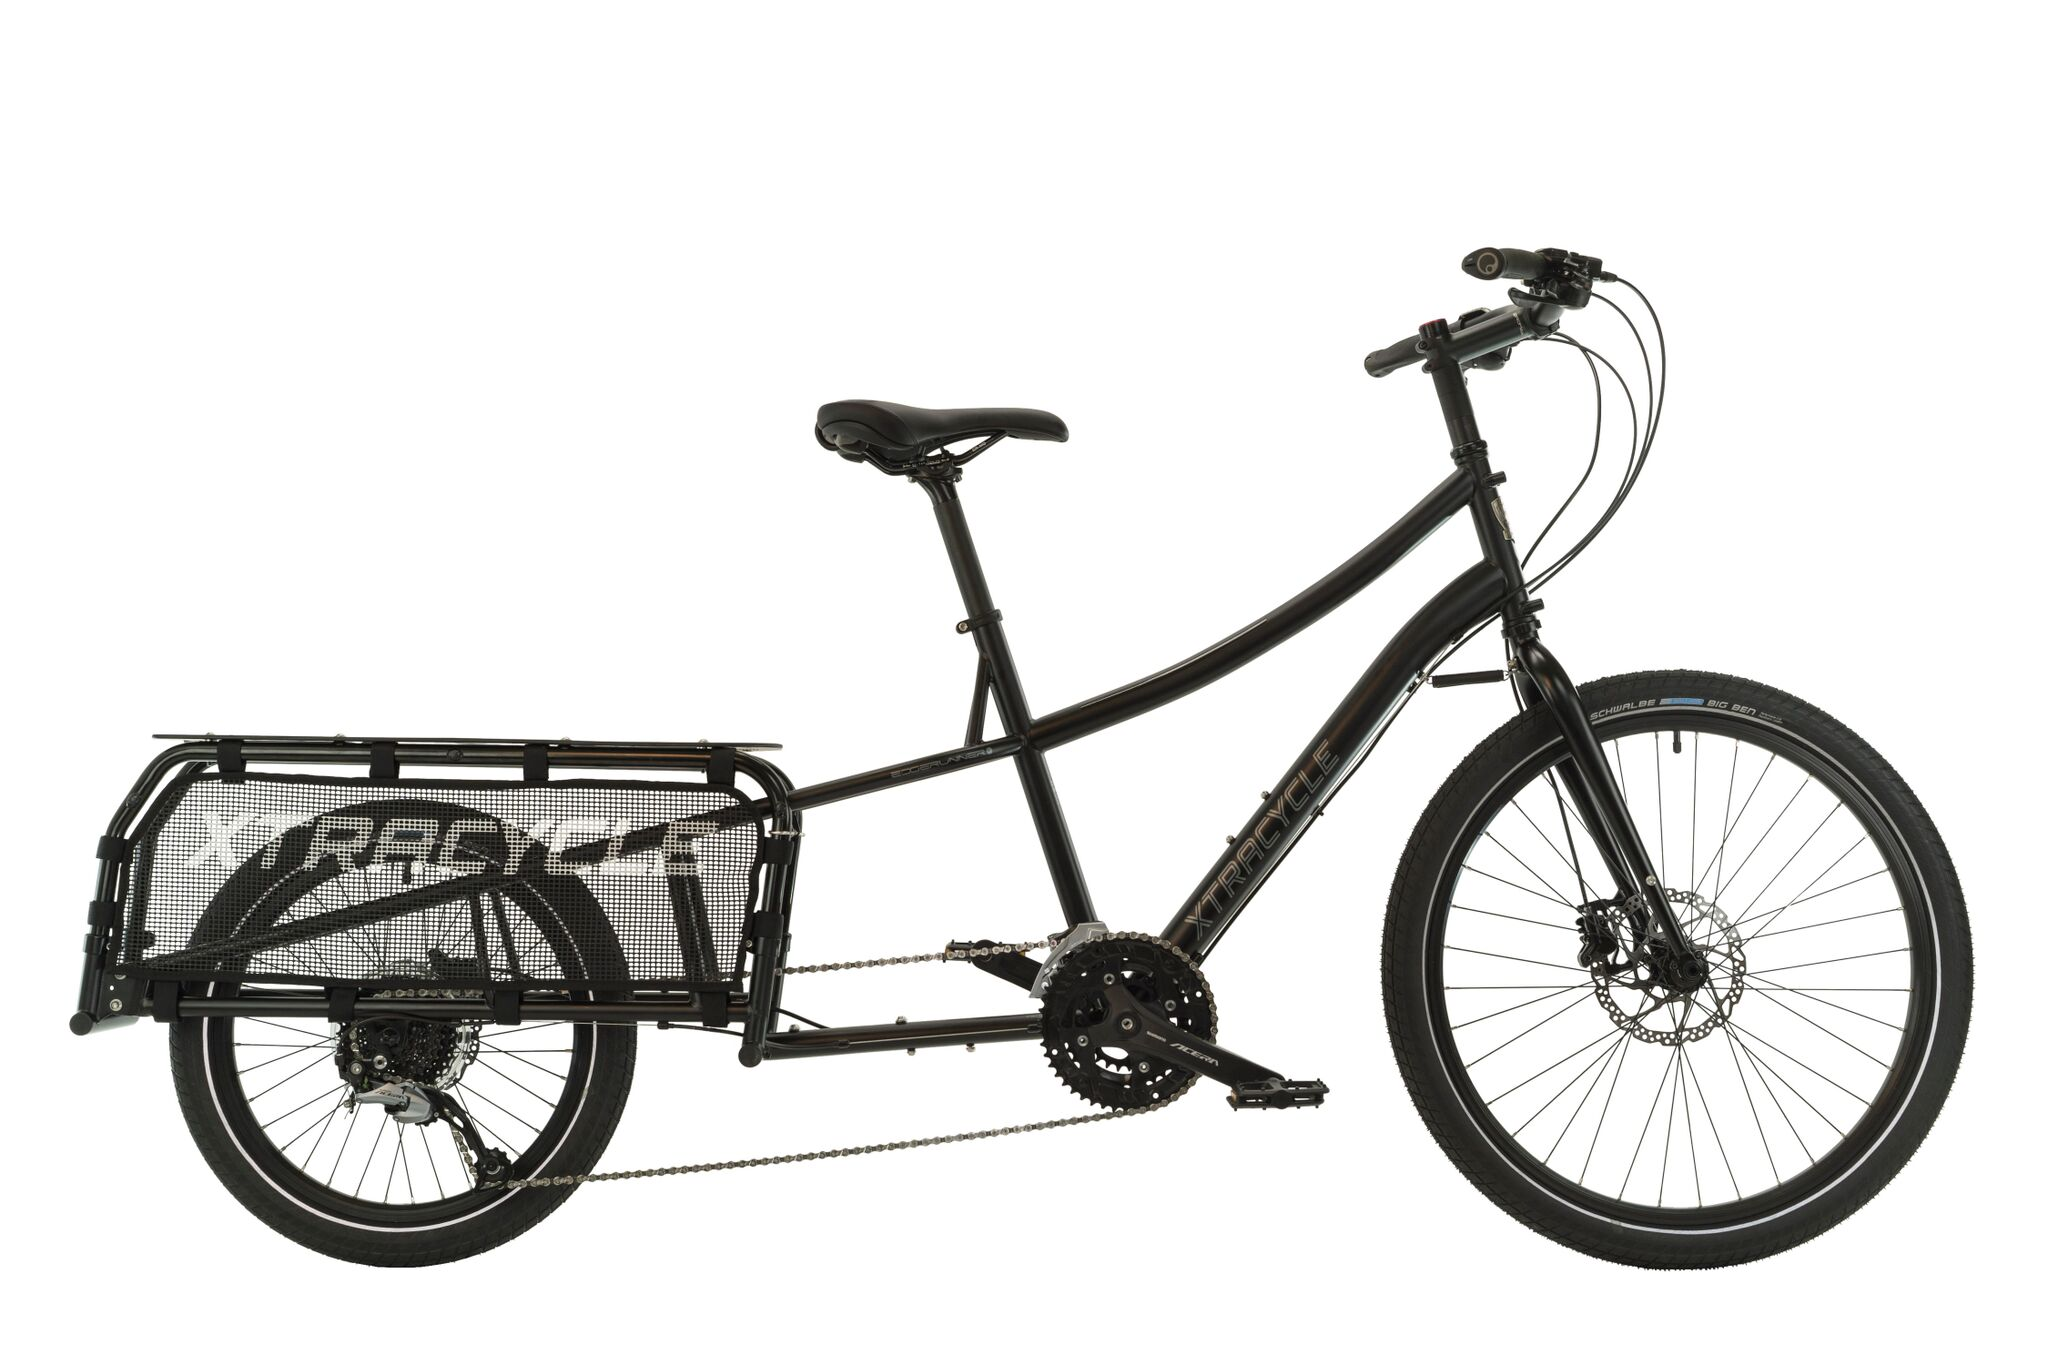 The Xtracycle EdgeRunner Classic  - Based on the popular and influential original EdgeRunner design - refined with thru-axle technology and a host of modular accessories.